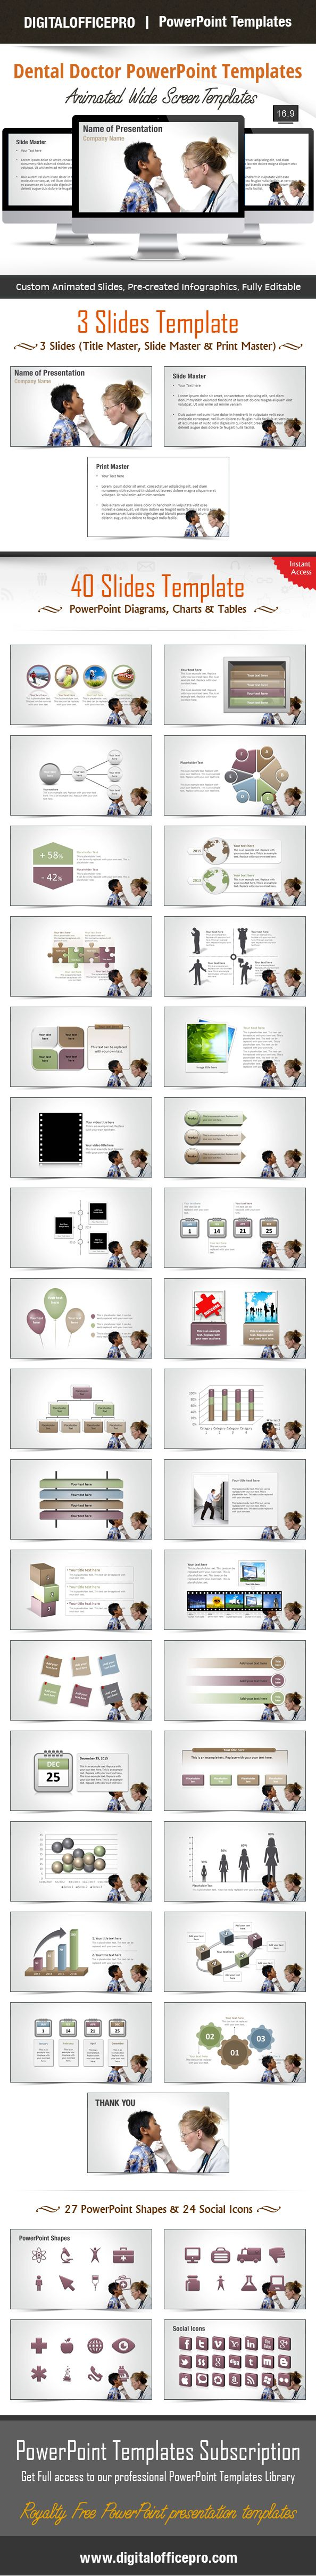 Impress and Engage your audience with Dental Doctor PowerPoint Template and Dental Doctor PowerPoint Backgrounds from DigitalOfficePro. Each template comes with a set of PowerPoint Diagrams, Charts & Shapes and are available for instant download.